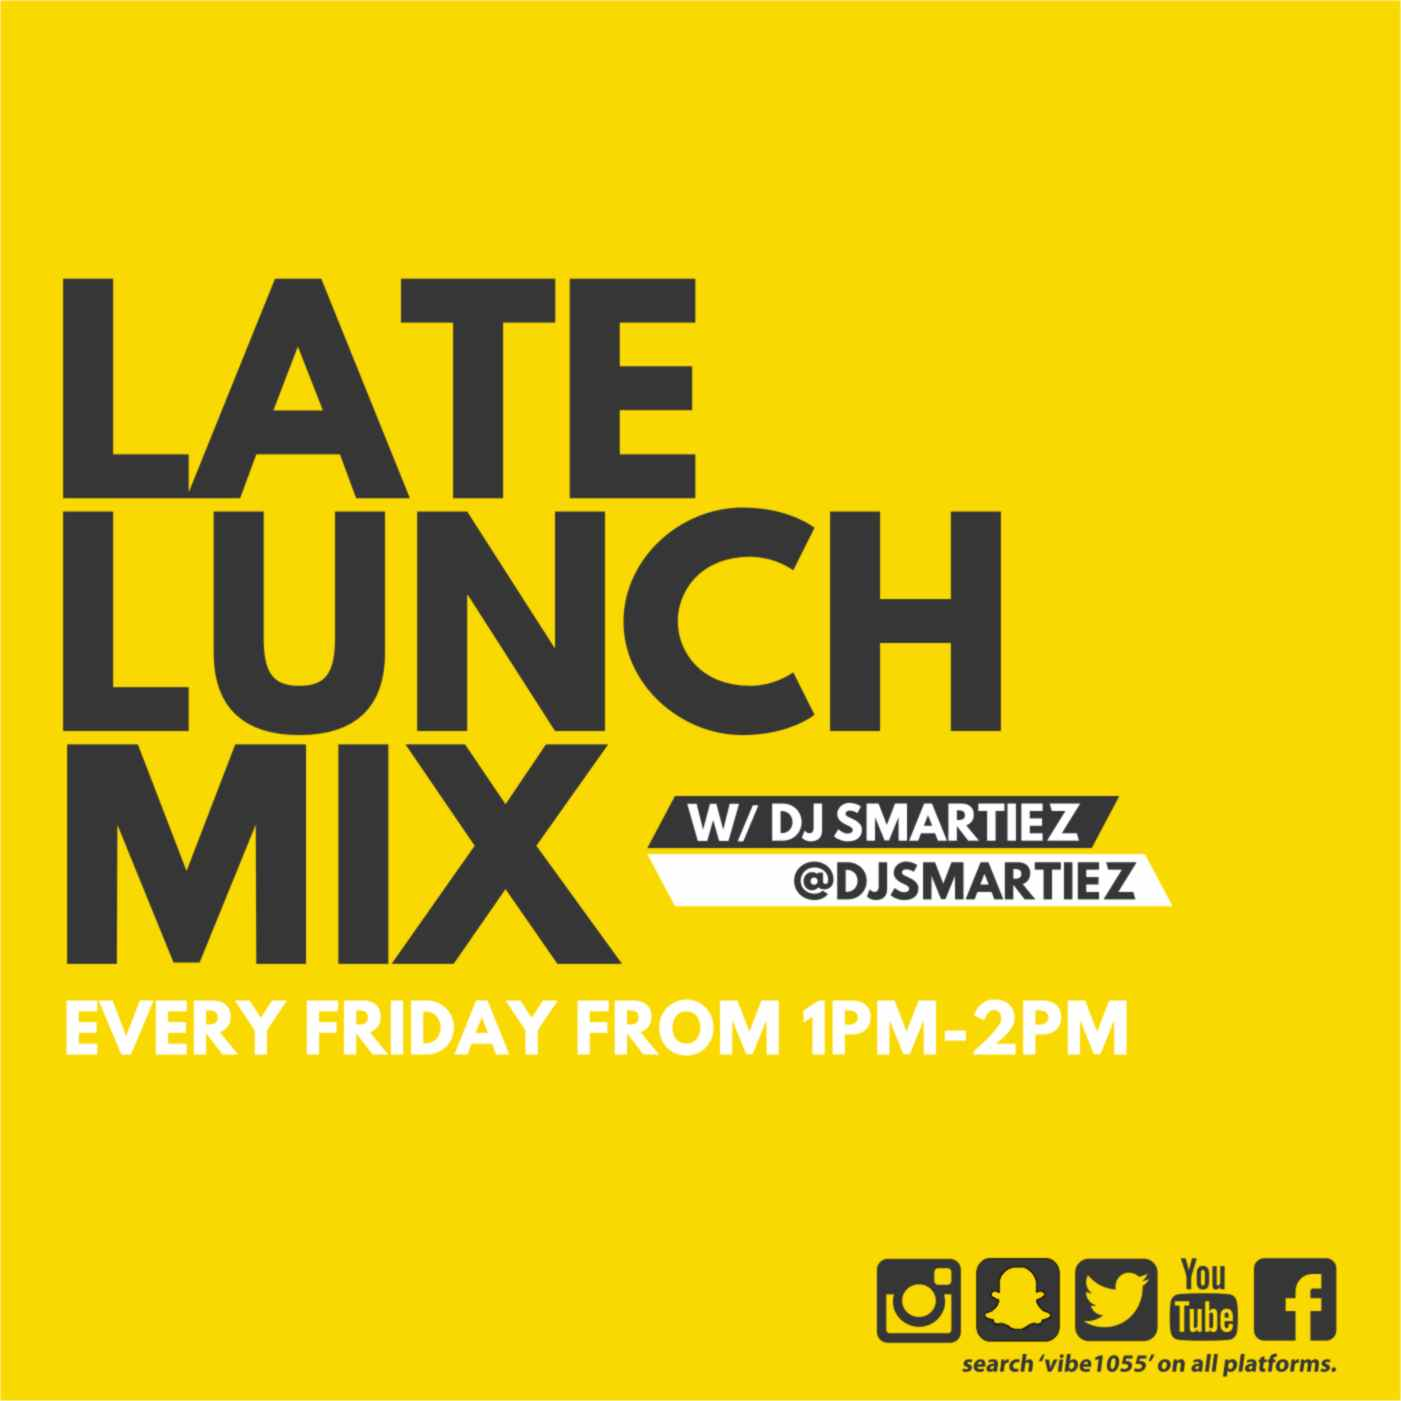 #LATELUNCHMIX – OCTOBER 28, 2016